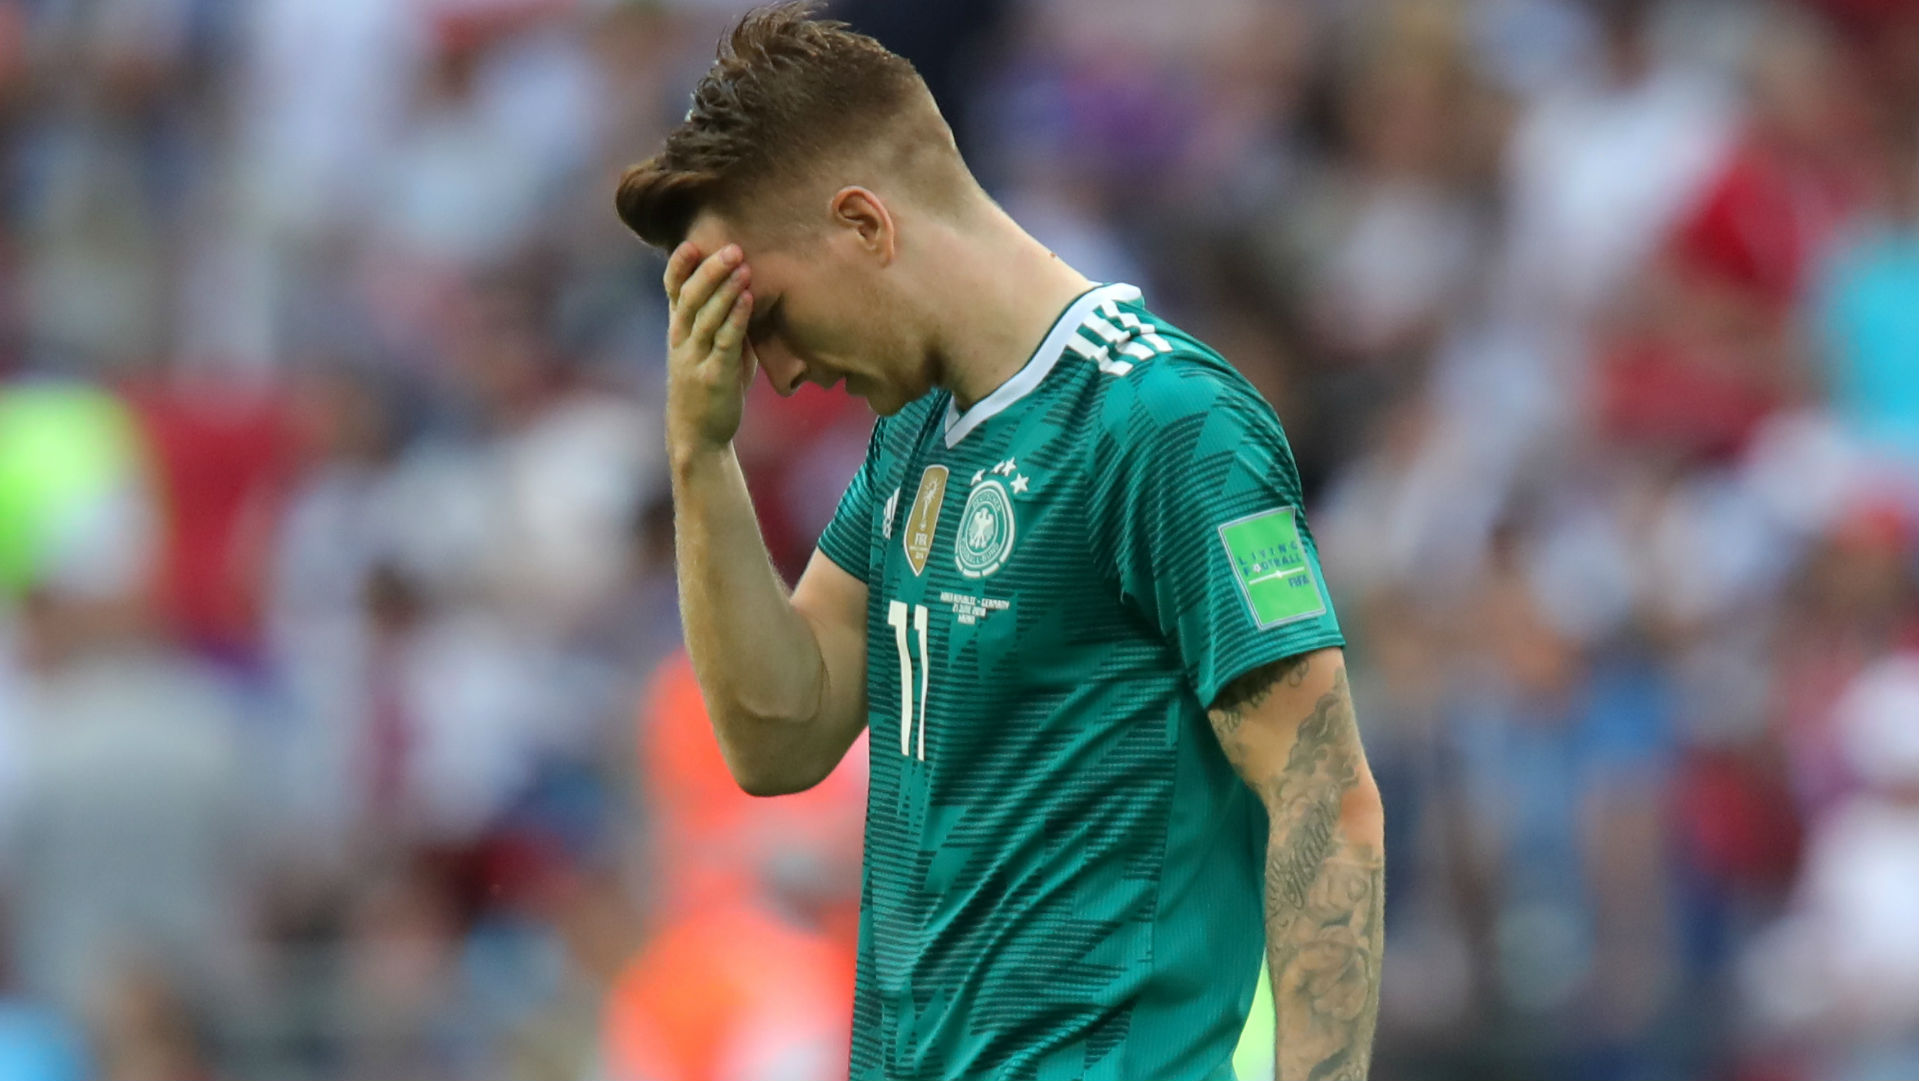 'Germany's downfall' - Newspapers react to shock World Cup elimination